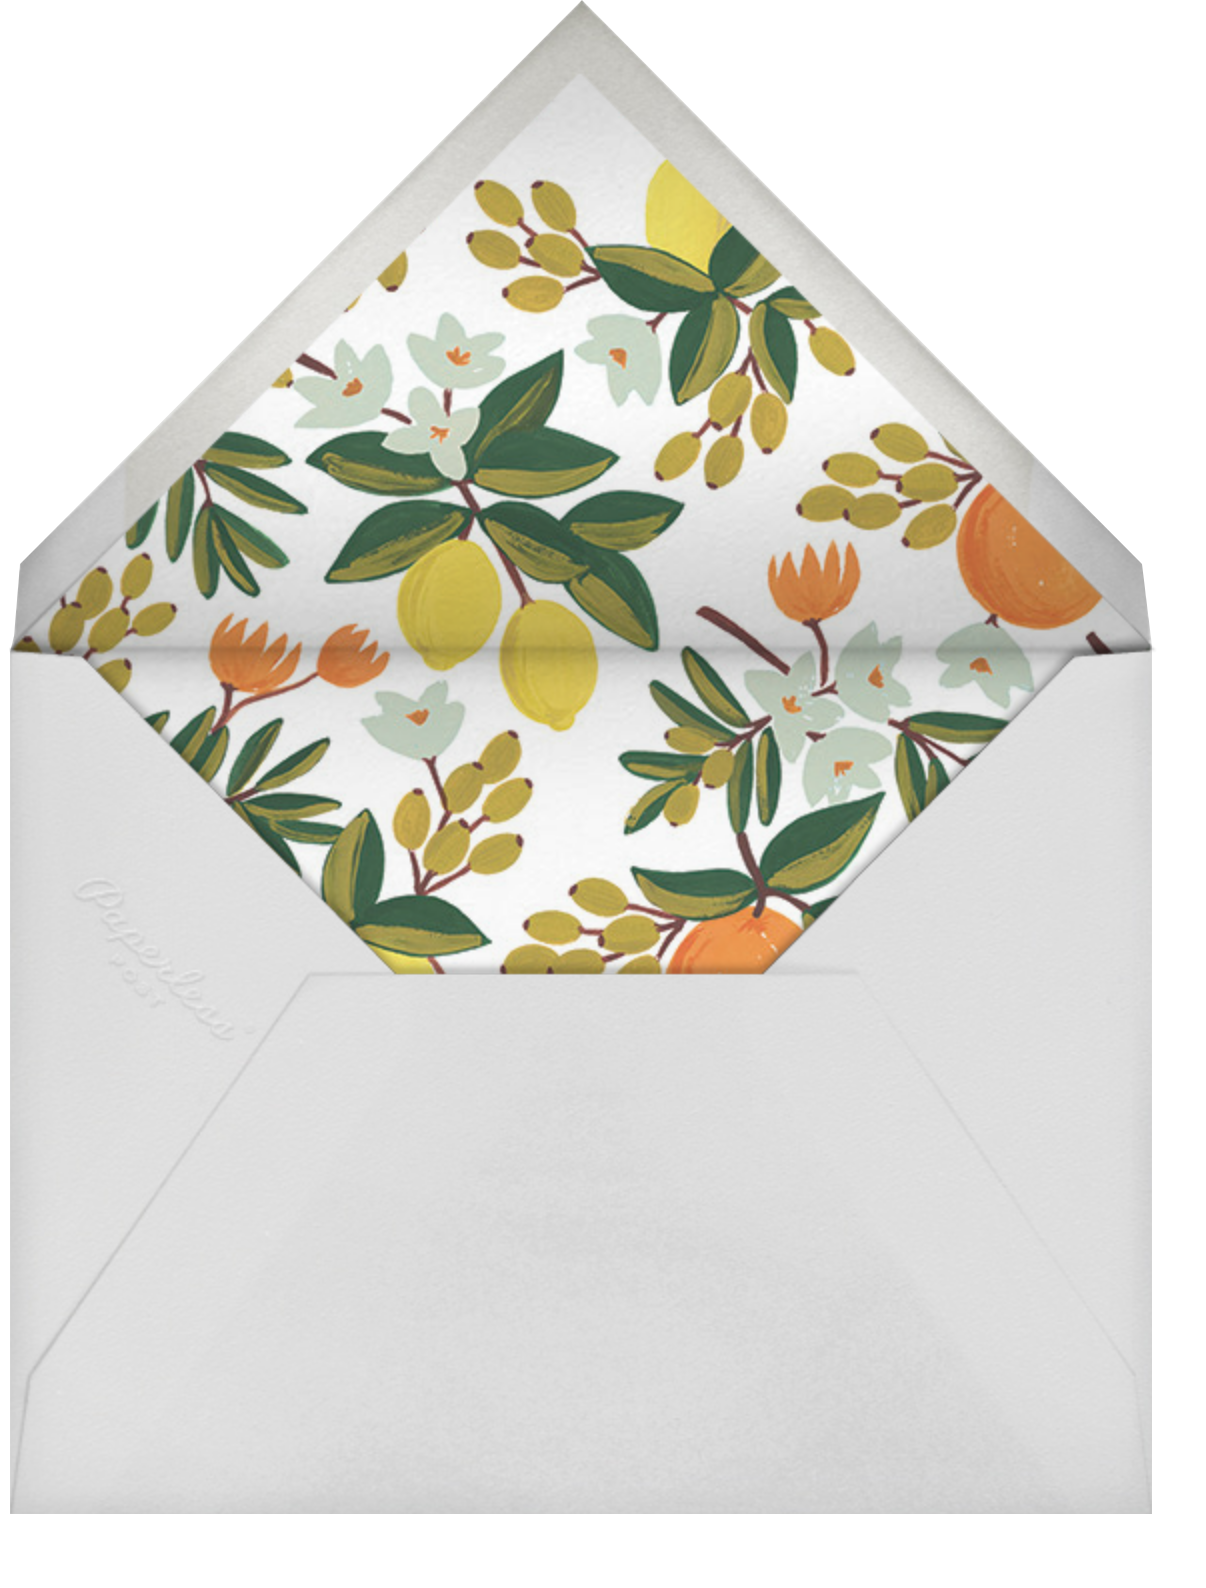 Citrus Orchard Suite (Save the Date) - Mint - Rifle Paper Co. - Save the date - envelope back